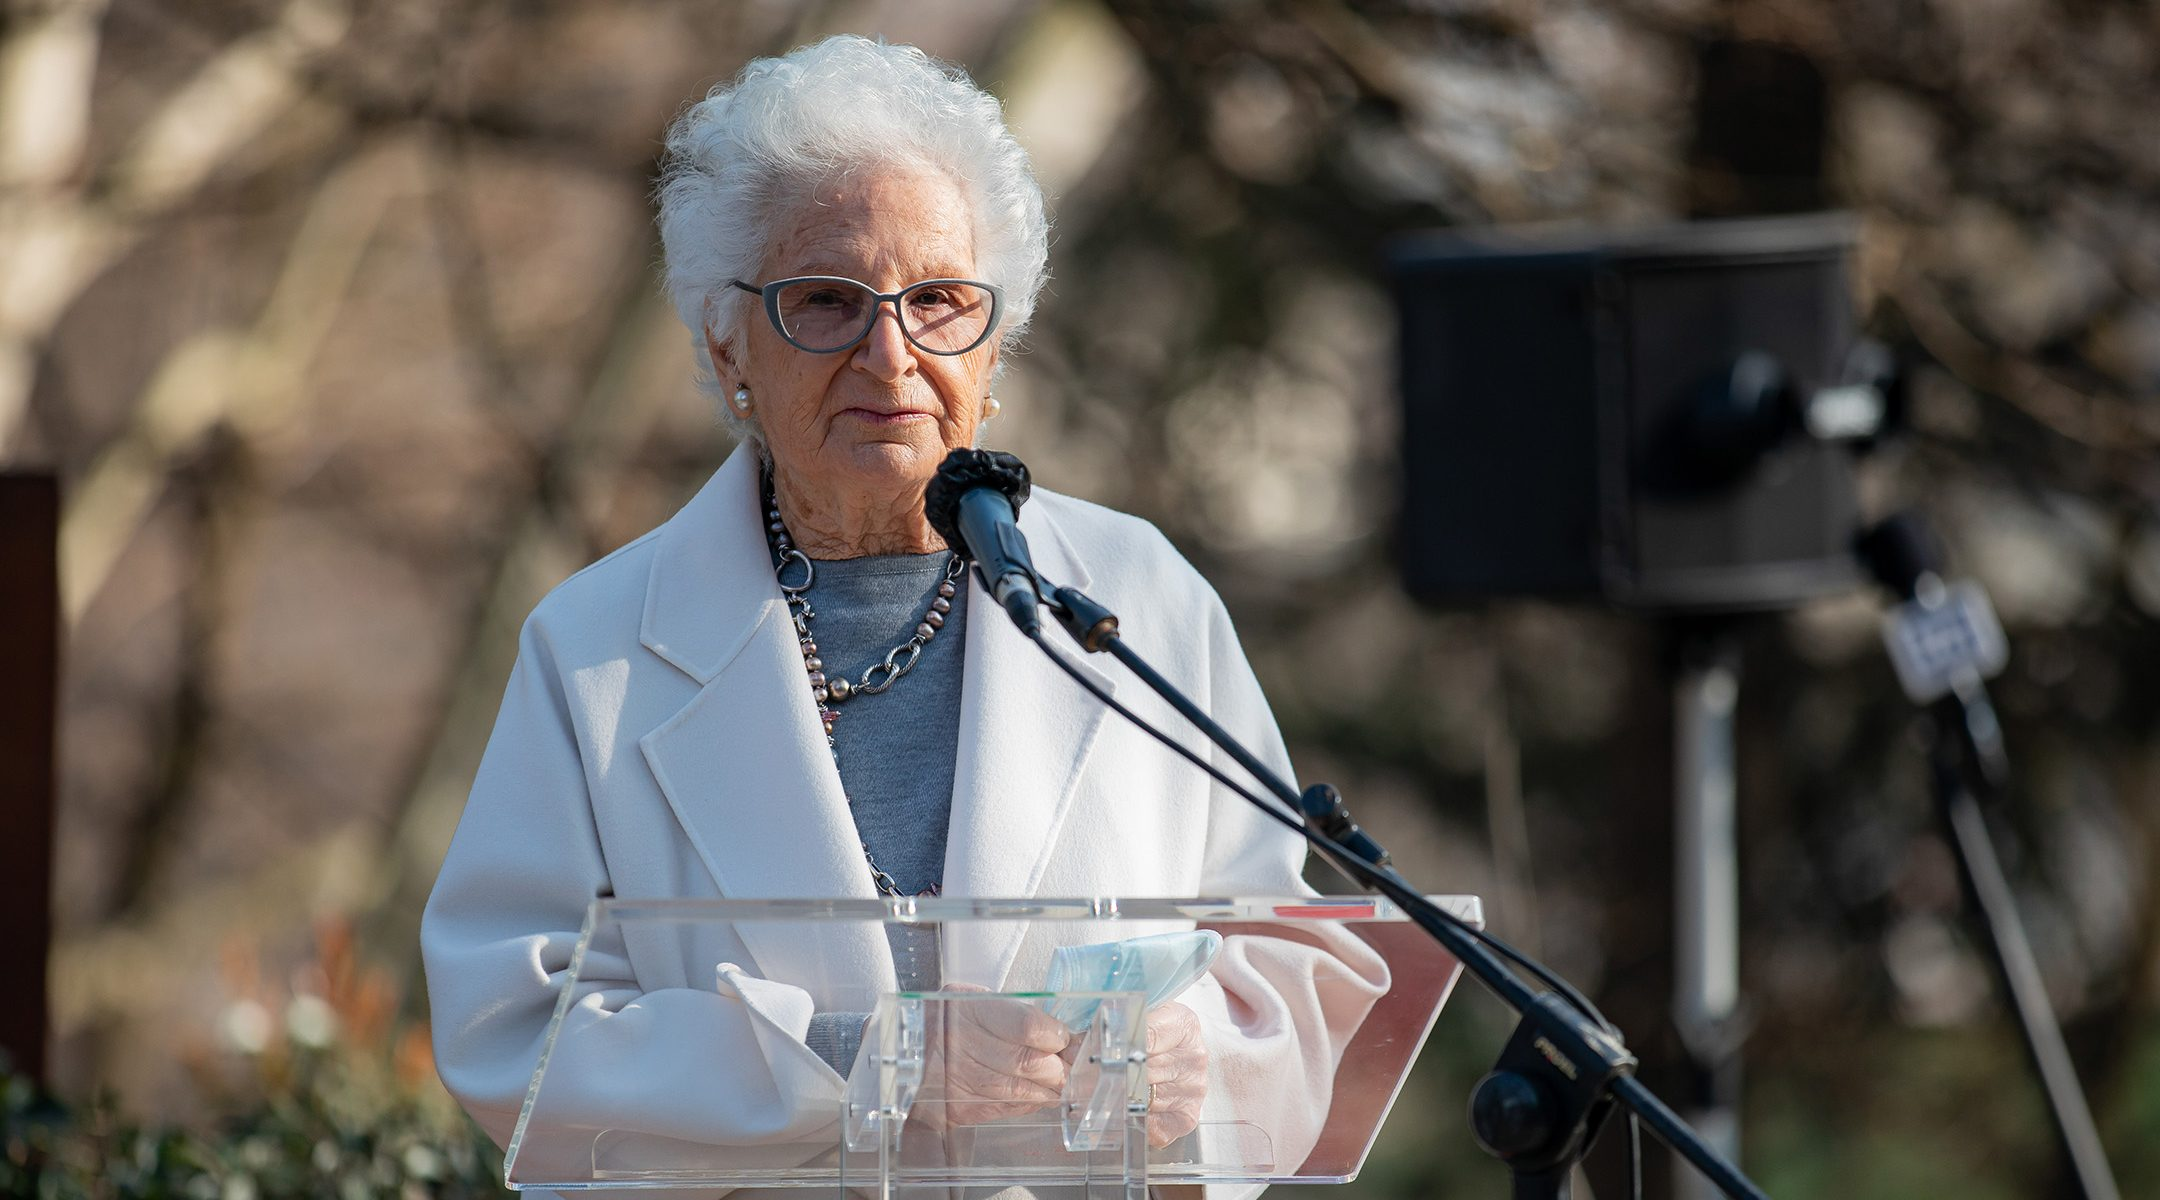 Liliana Segre attends a ceremony honoring people who saved Jews during the Holocaust in Milan, Italy March 05, 2021. (Alessandro Bremec/NurPhoto via Getty Images)